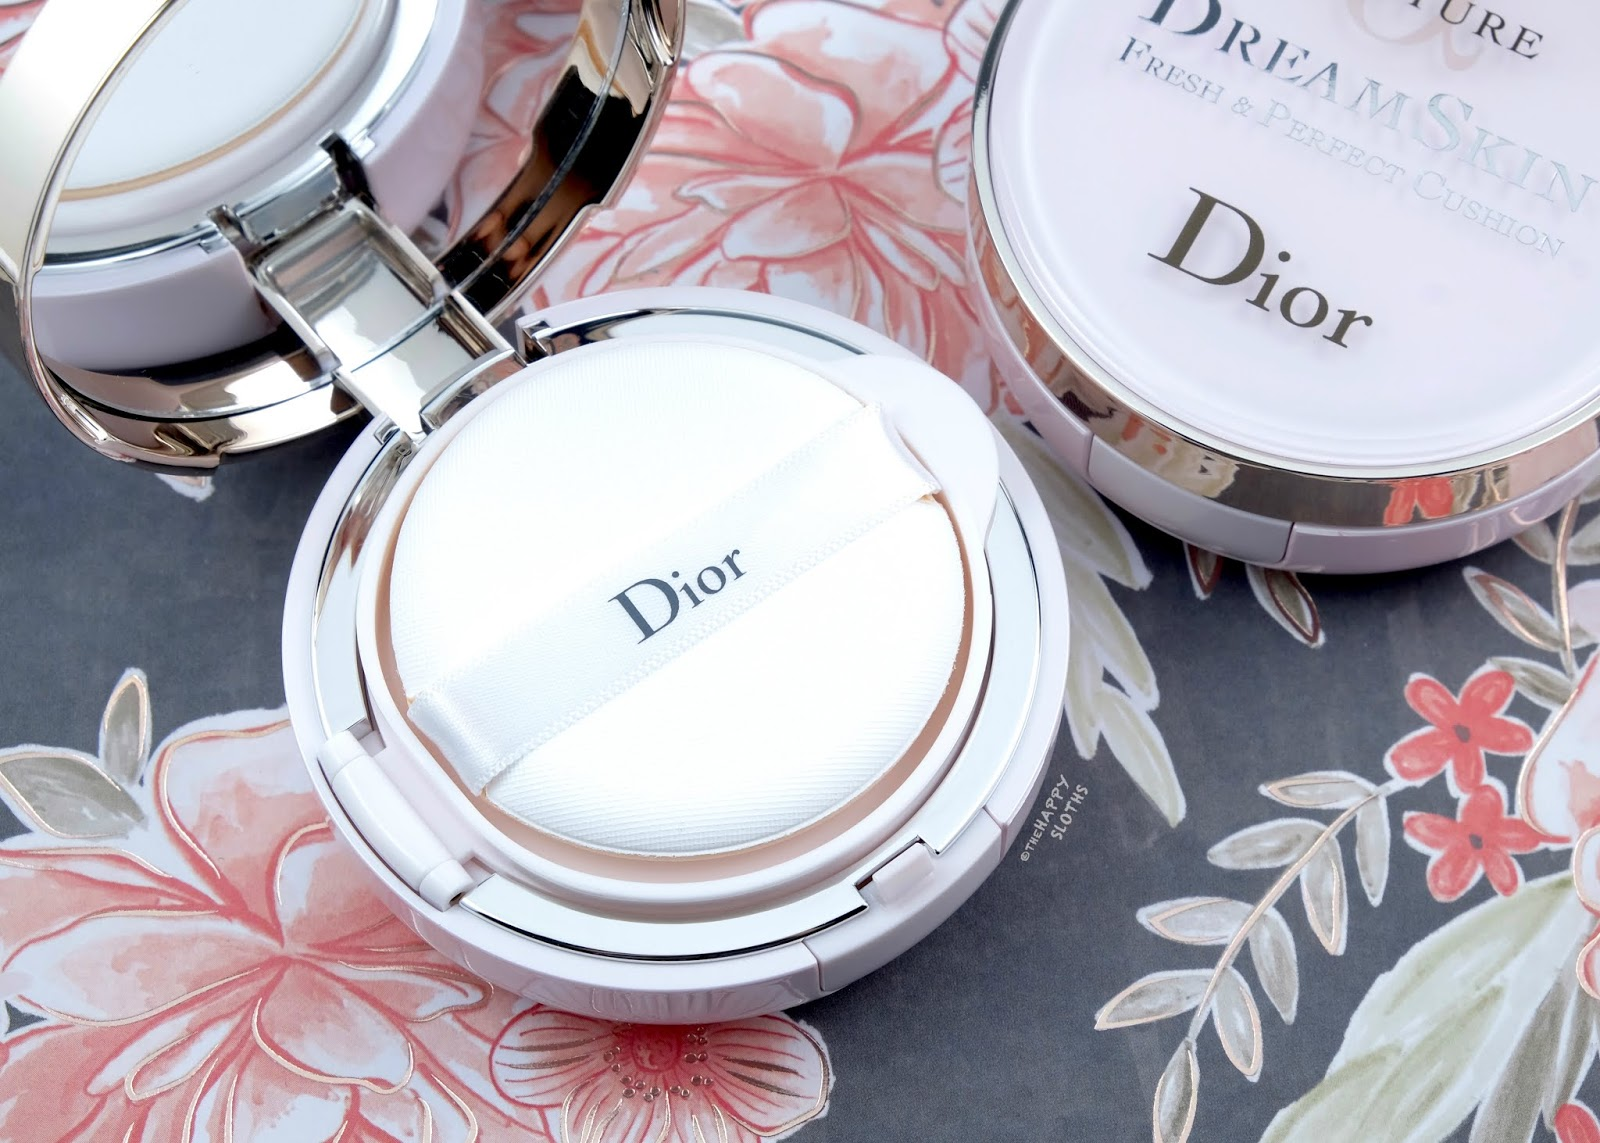 Dior | Capture Dreamskin Fresh & Perfect Cushion: Review and Swatches